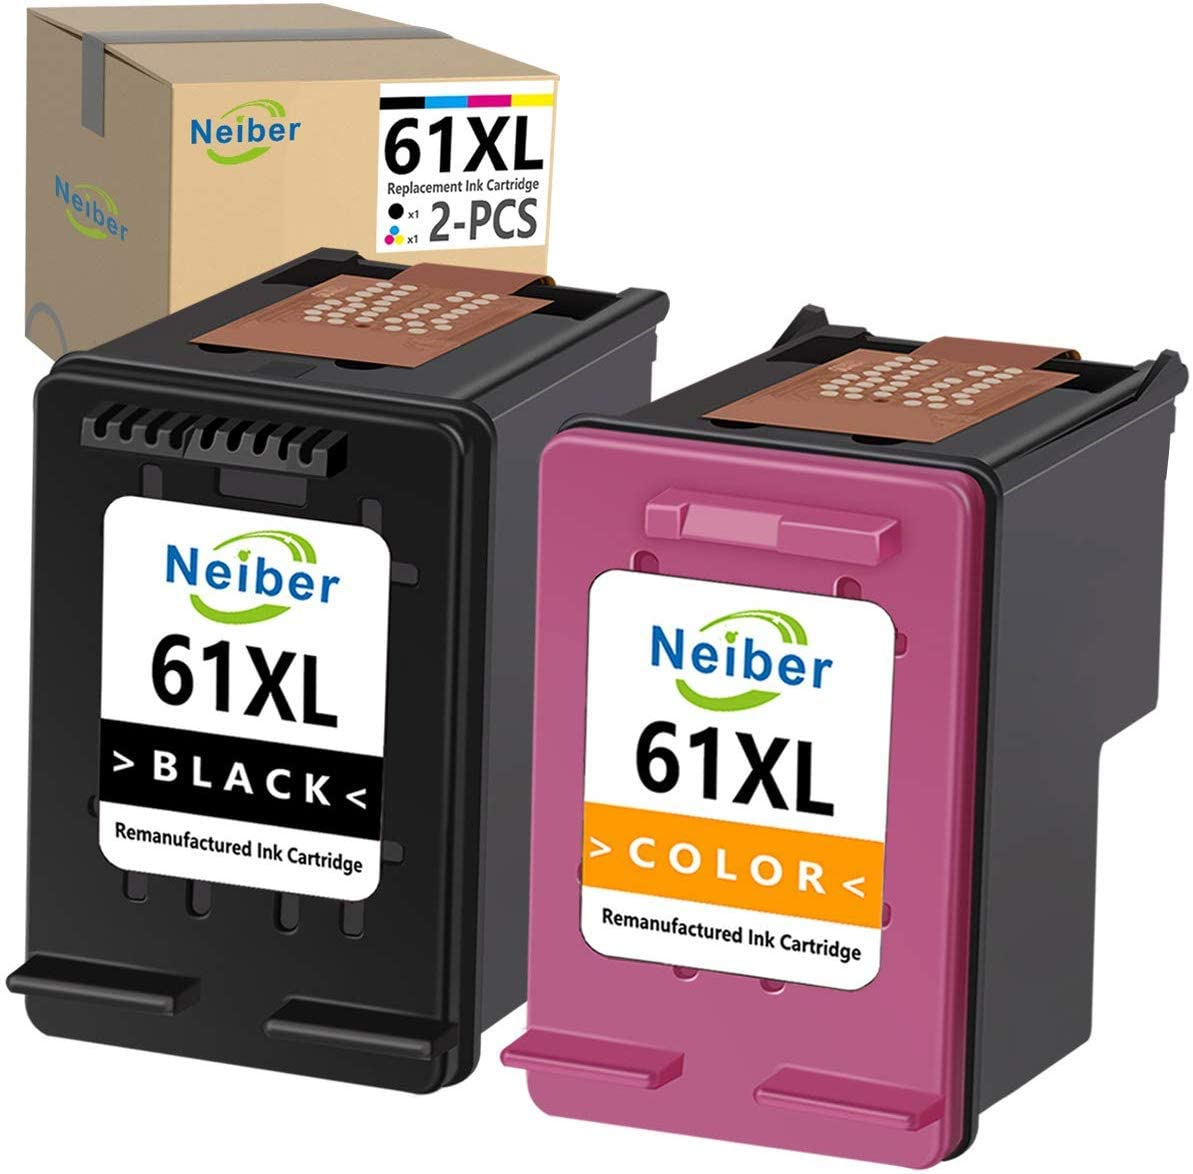 Neiber Remanufactured Ink Cartridge Replacement for HP 61XL 61 XL (Black Tri-Color 2-Pack) Work with OfficeJet 2622 4635 4632 2620 Envy 4500 5530 4502 5534 5532 DeskJet 3050 3050A 3060 3000 Printer